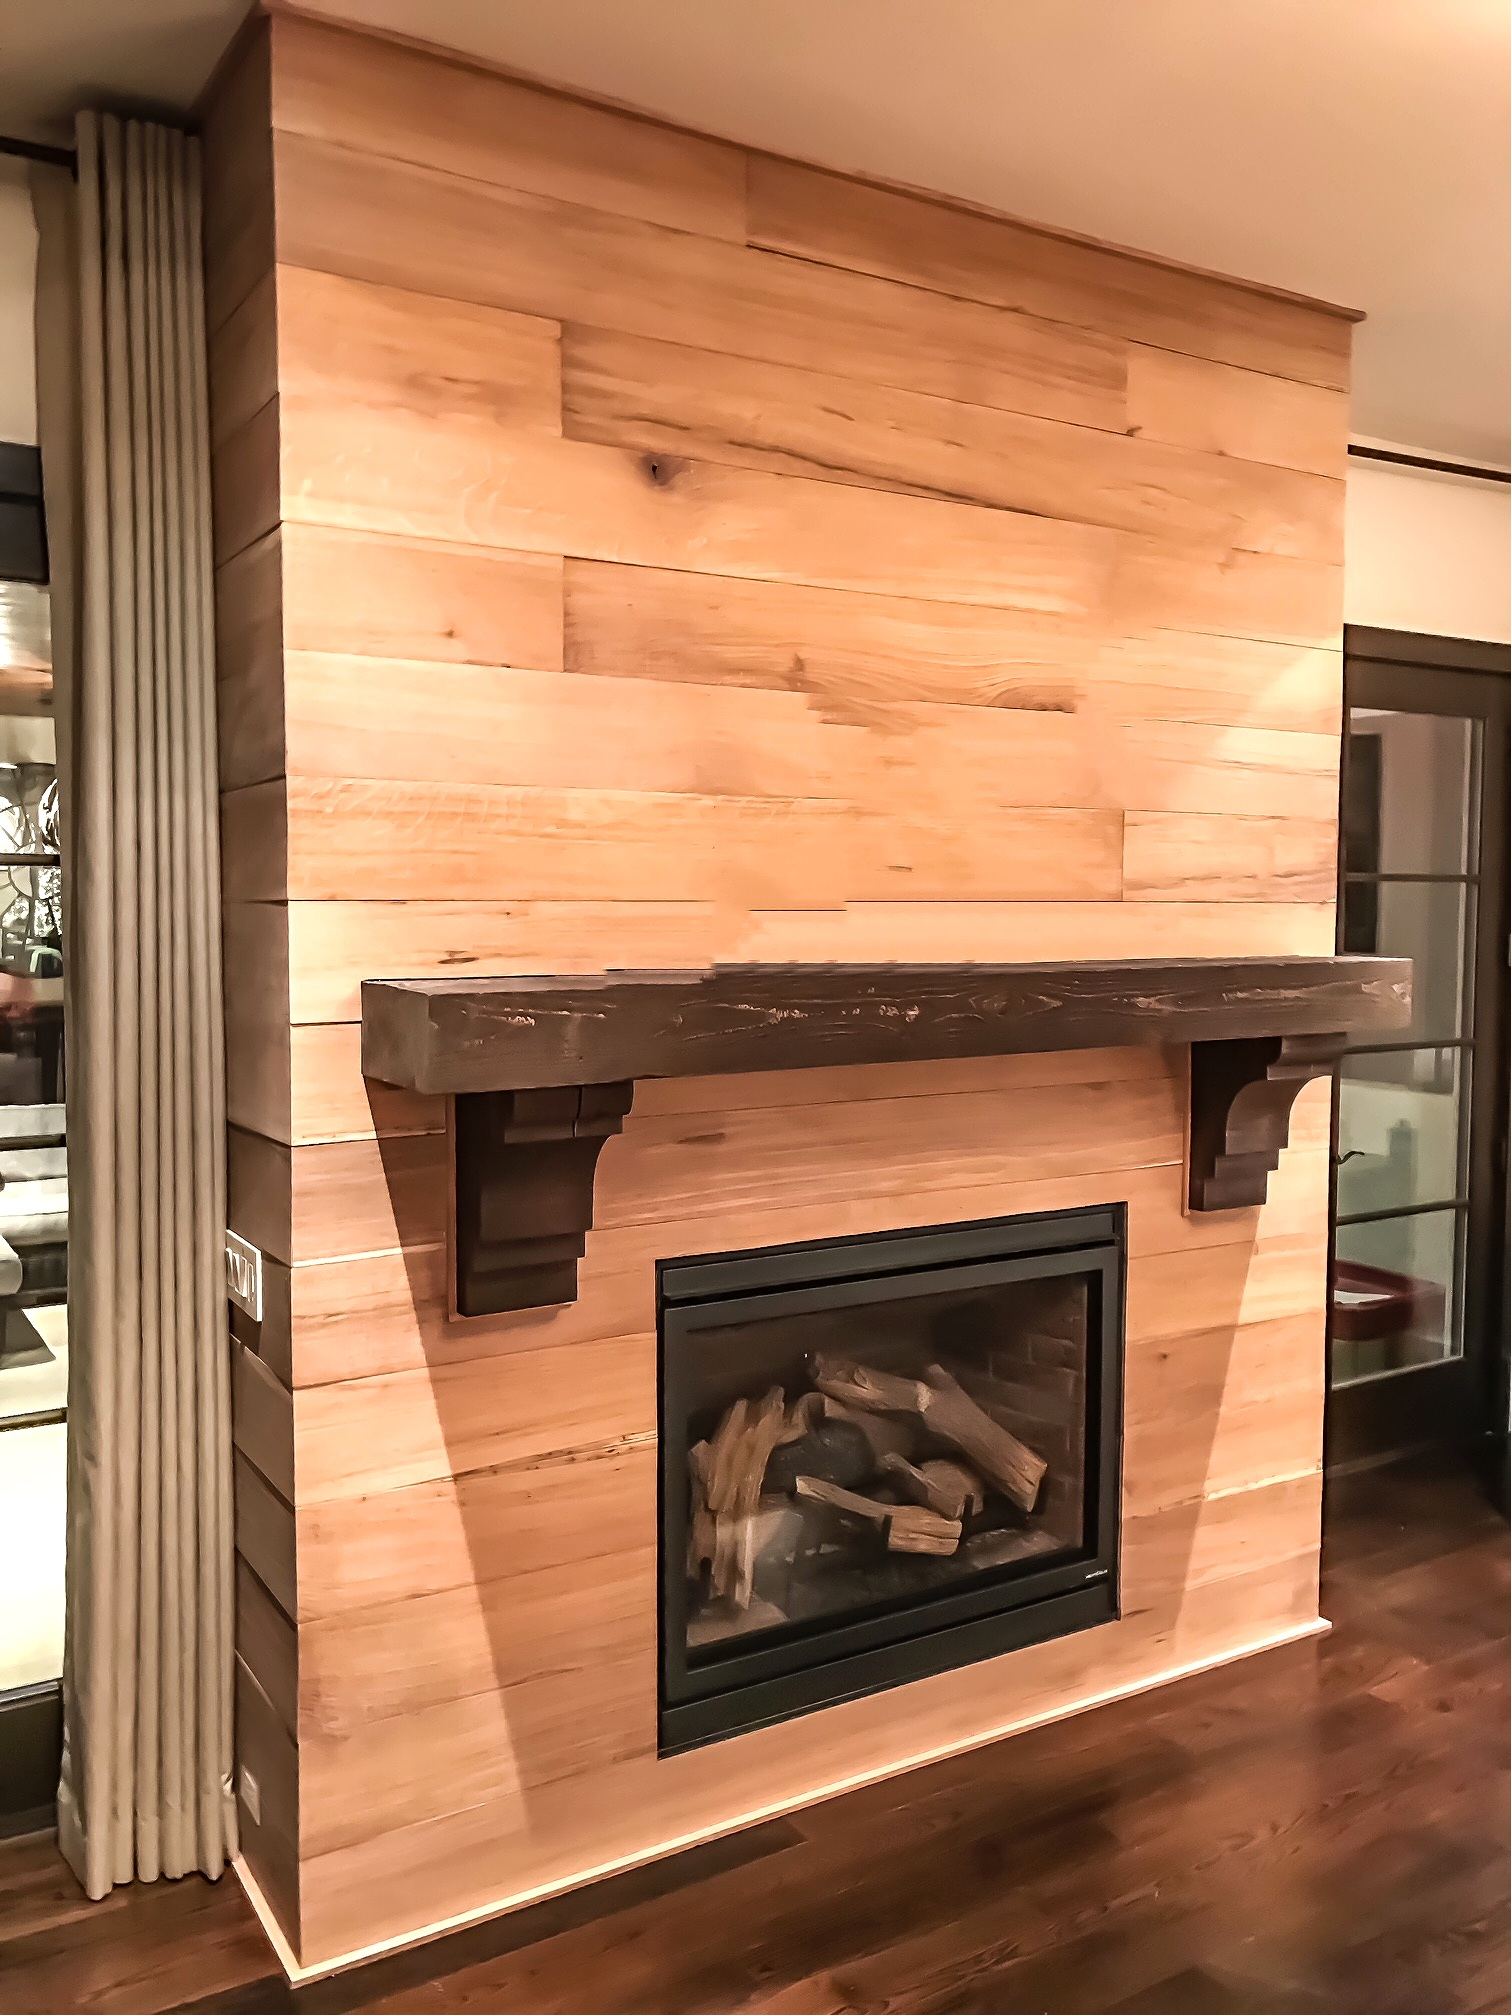 Eutree Forest Free White Oak Fireplace Paneling Habachy Designs & Atelier.JPEG